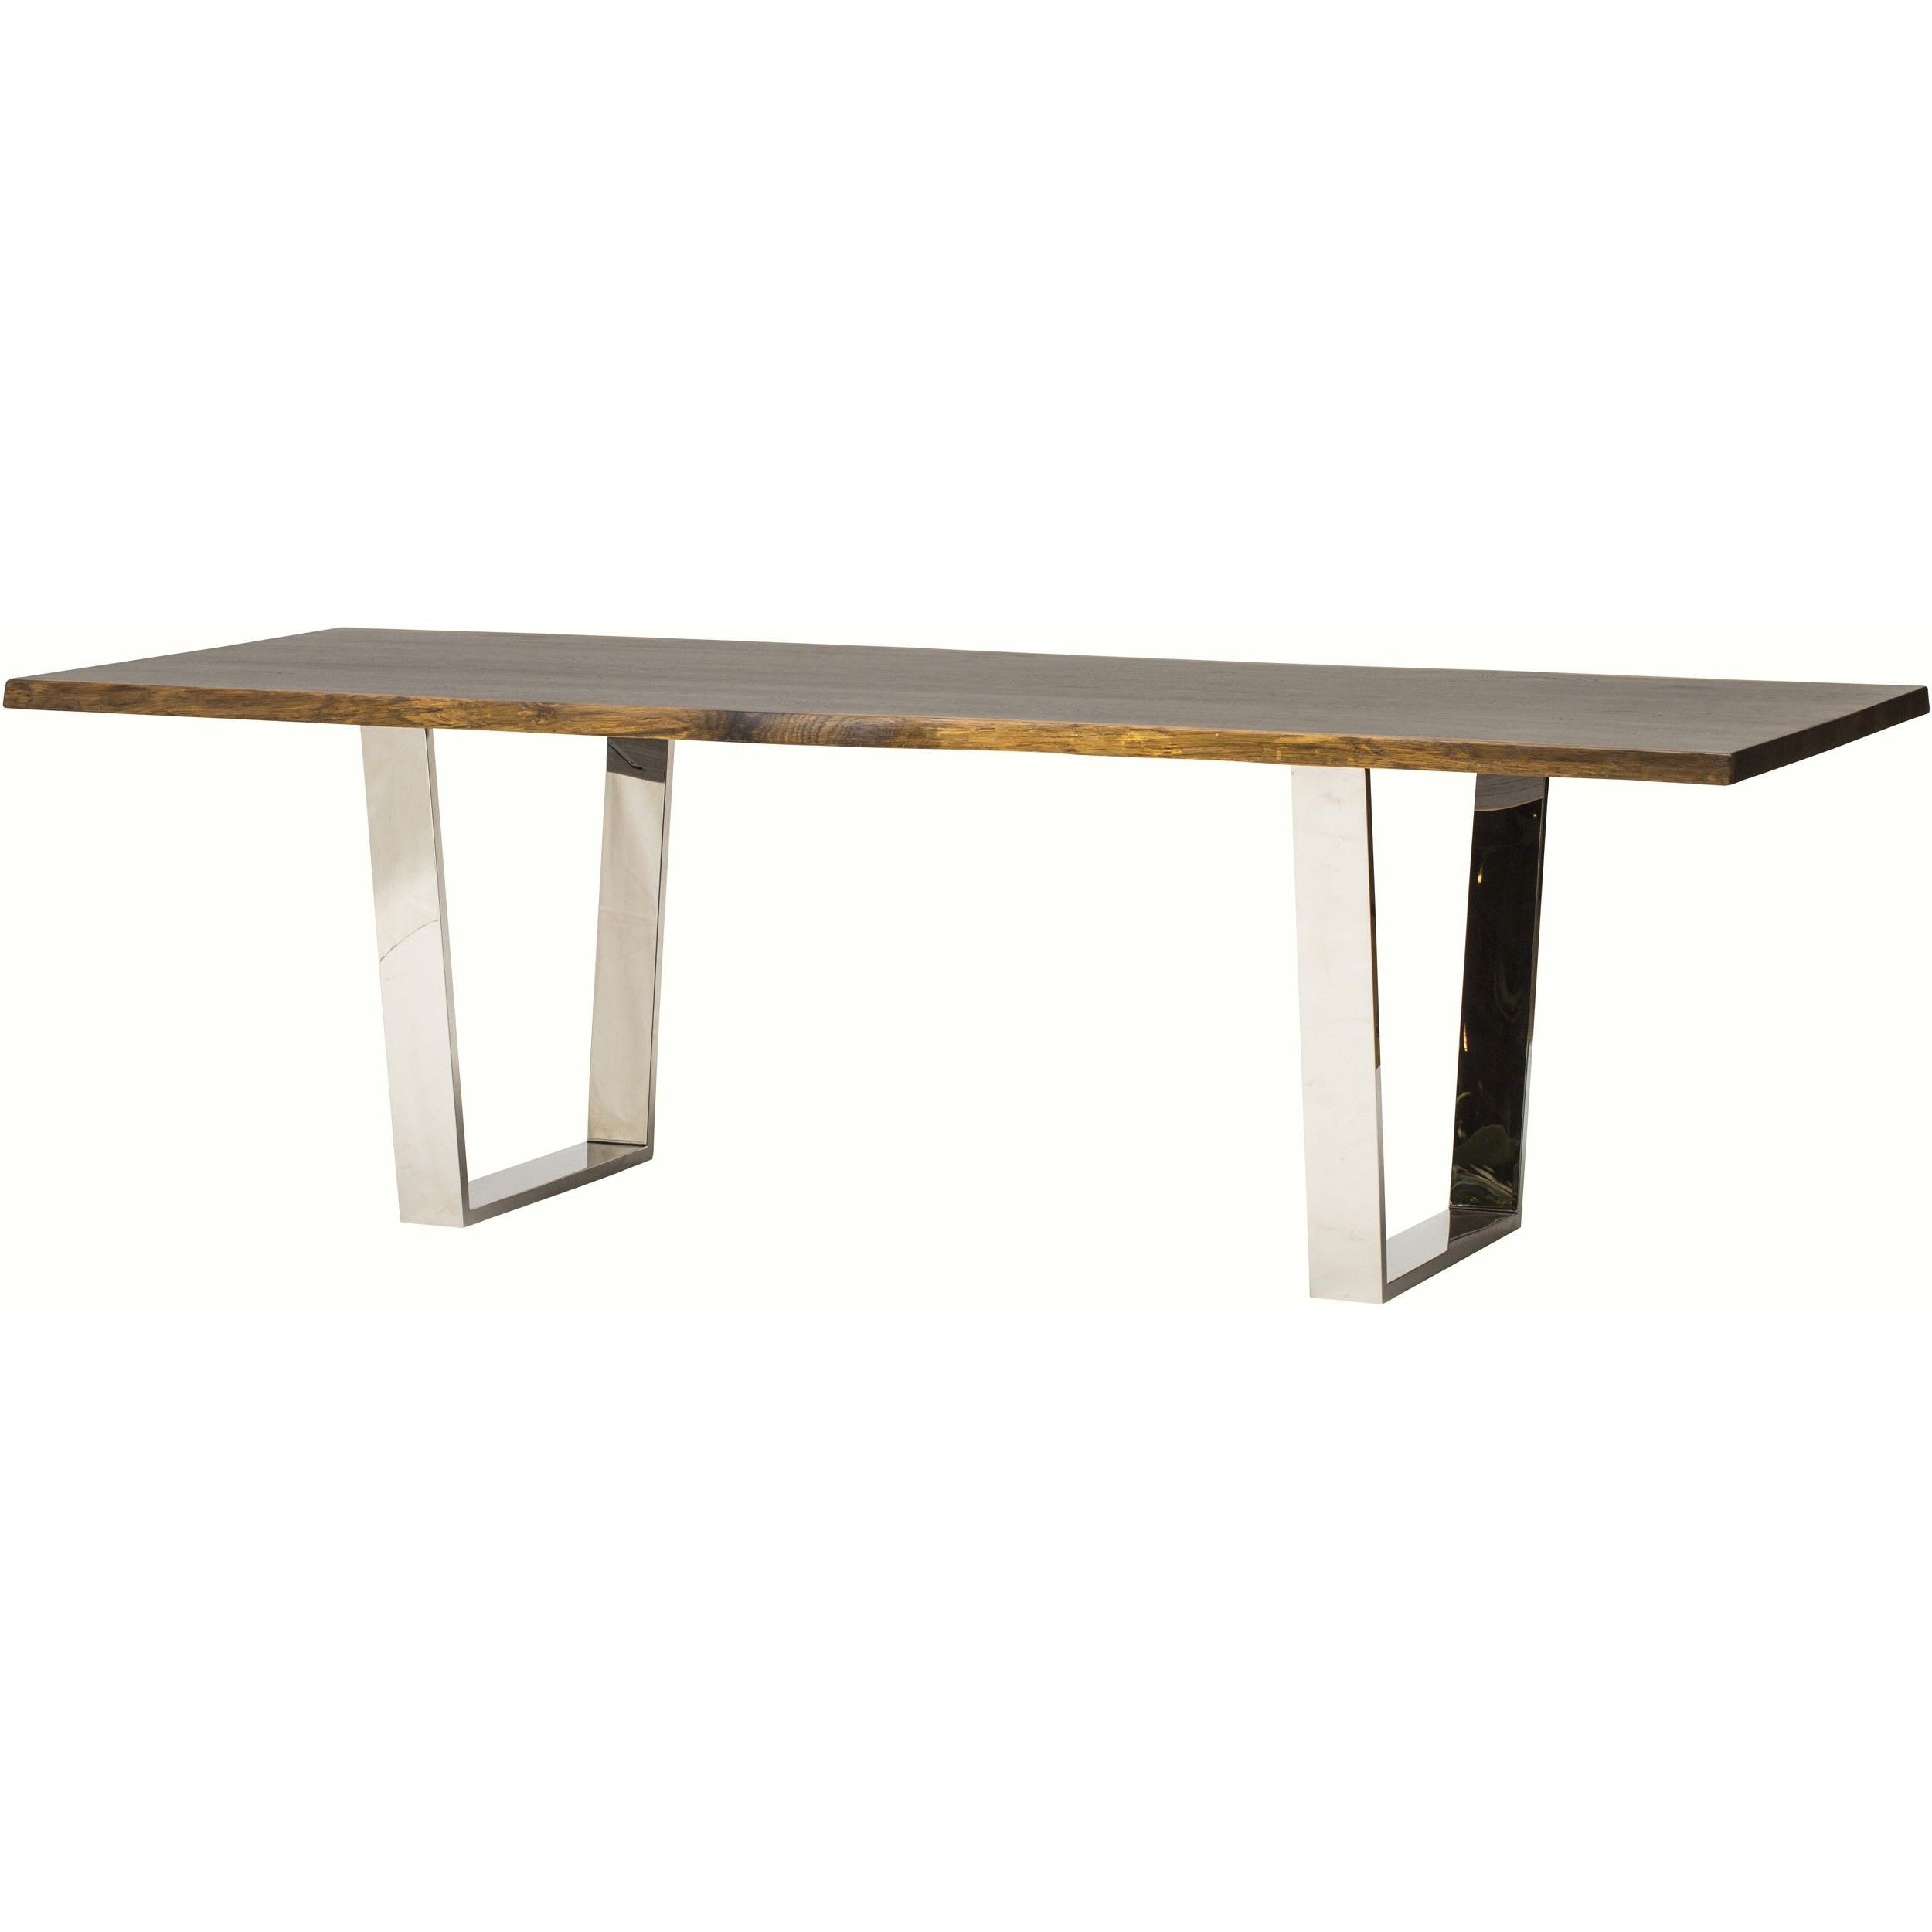 Dining Tables In Seared Oak Within Famous Versailles Dining Table, Seared Oak/polished Stainless Base (View 14 of 25)